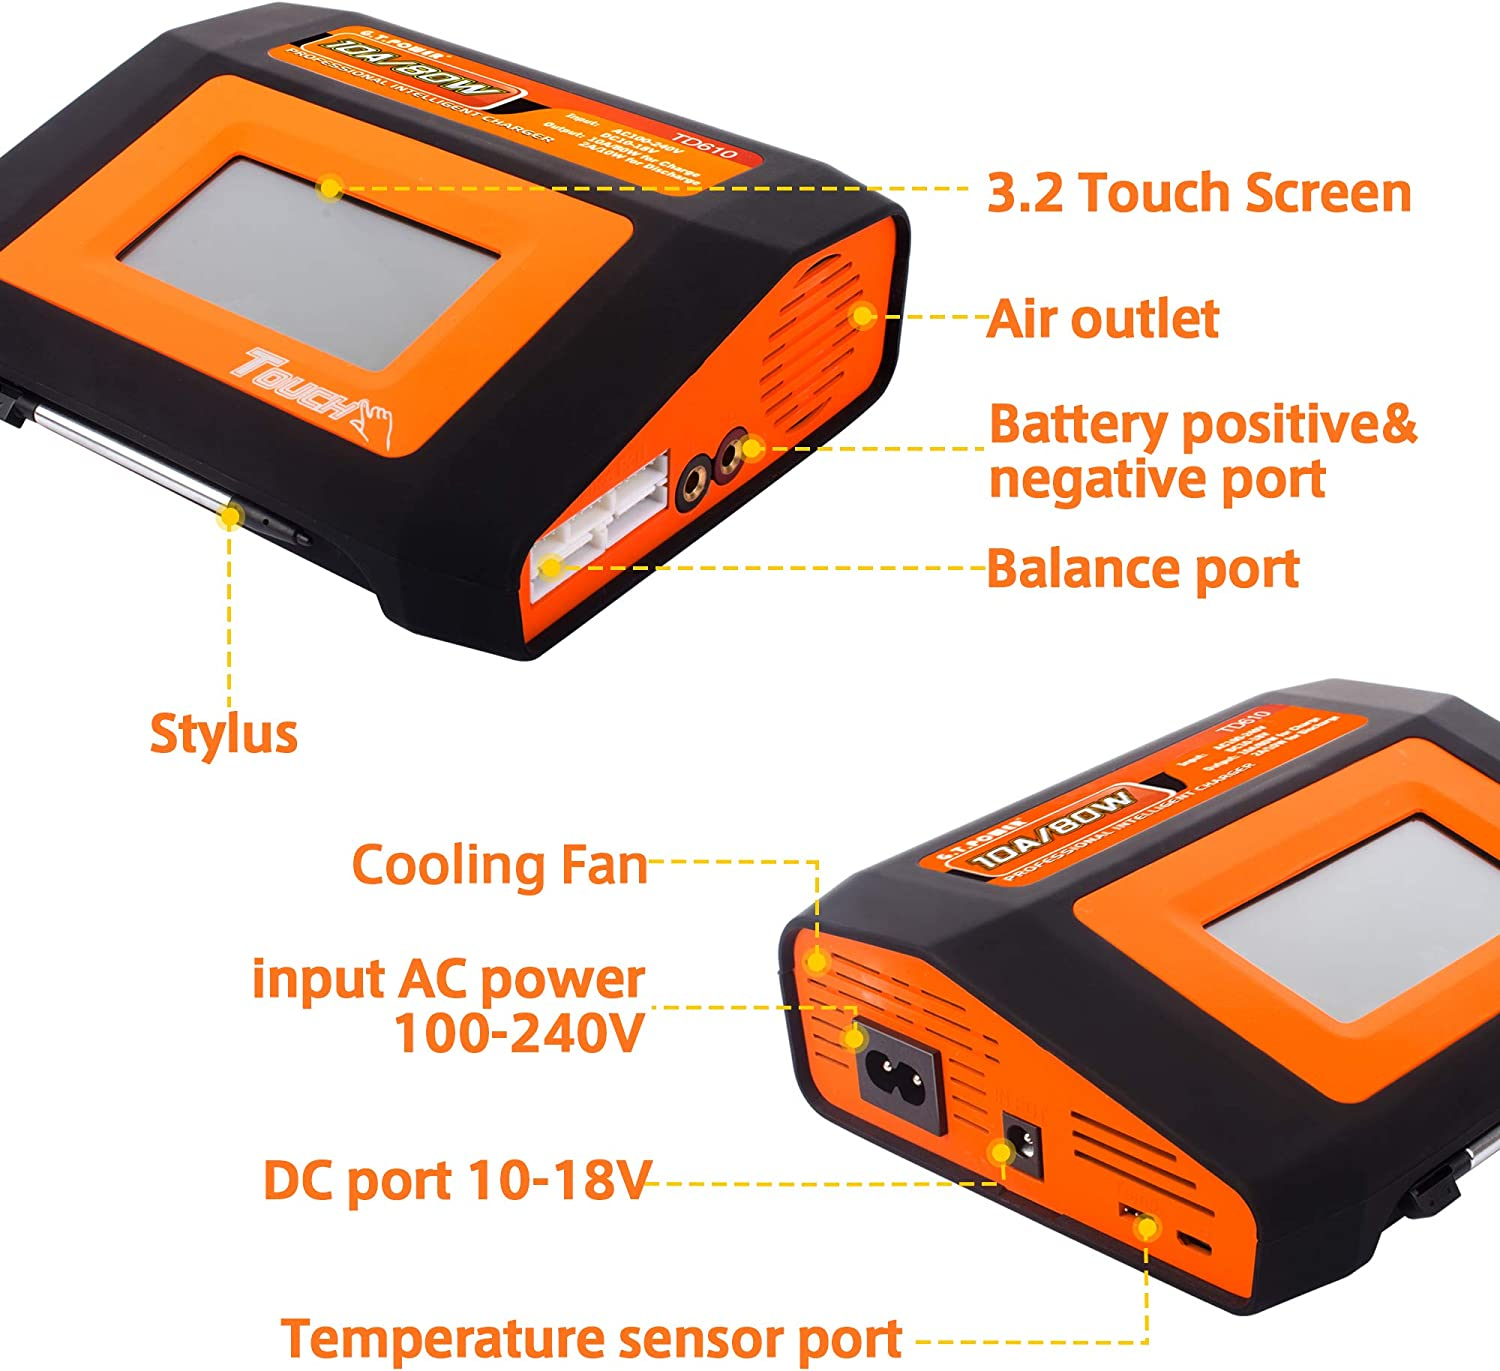 Td610 Charger G.T.Power TD610 LiPo Charger Dual RC Battery Balance Charger Touch Screen 10A80W for 1-6S Lipo//Li-ion//Life//NiCd//NiMH//PB Battery